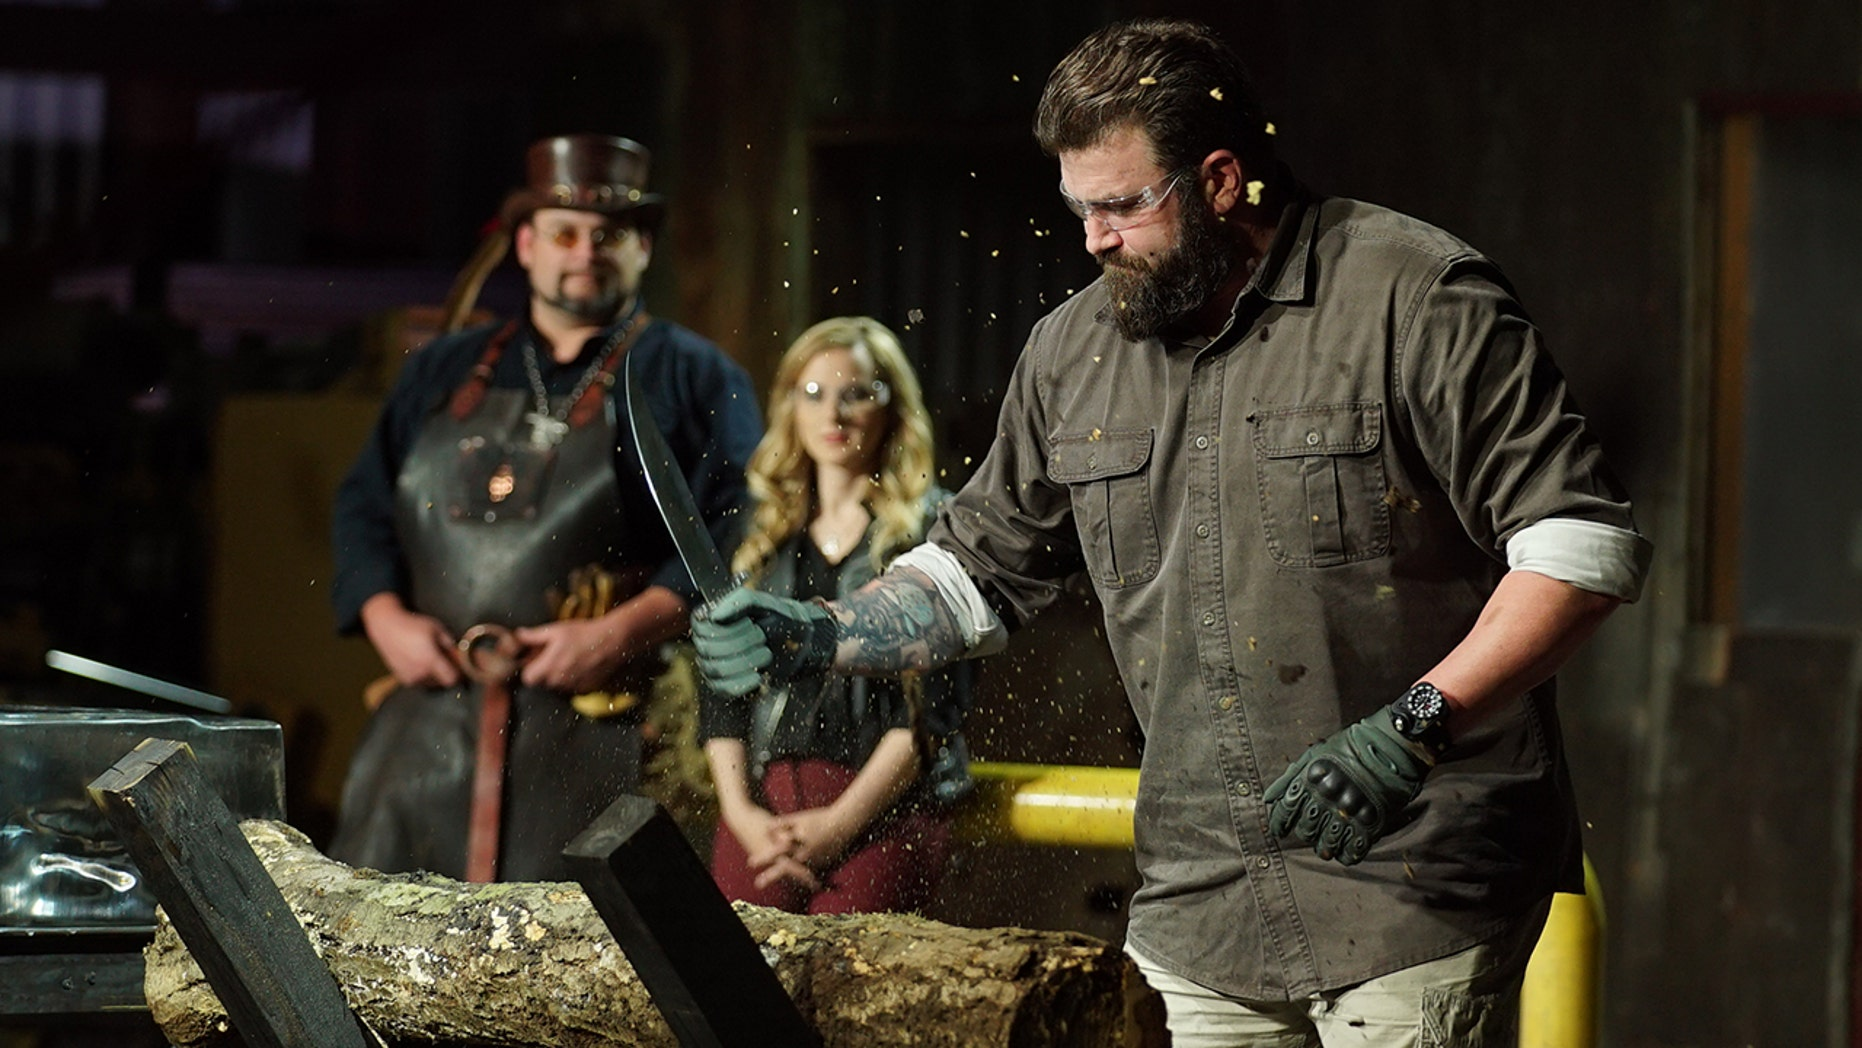 'Master of Arms' judge Zeke chopping at a log with contestants knife. Trent and Ashley in the background.